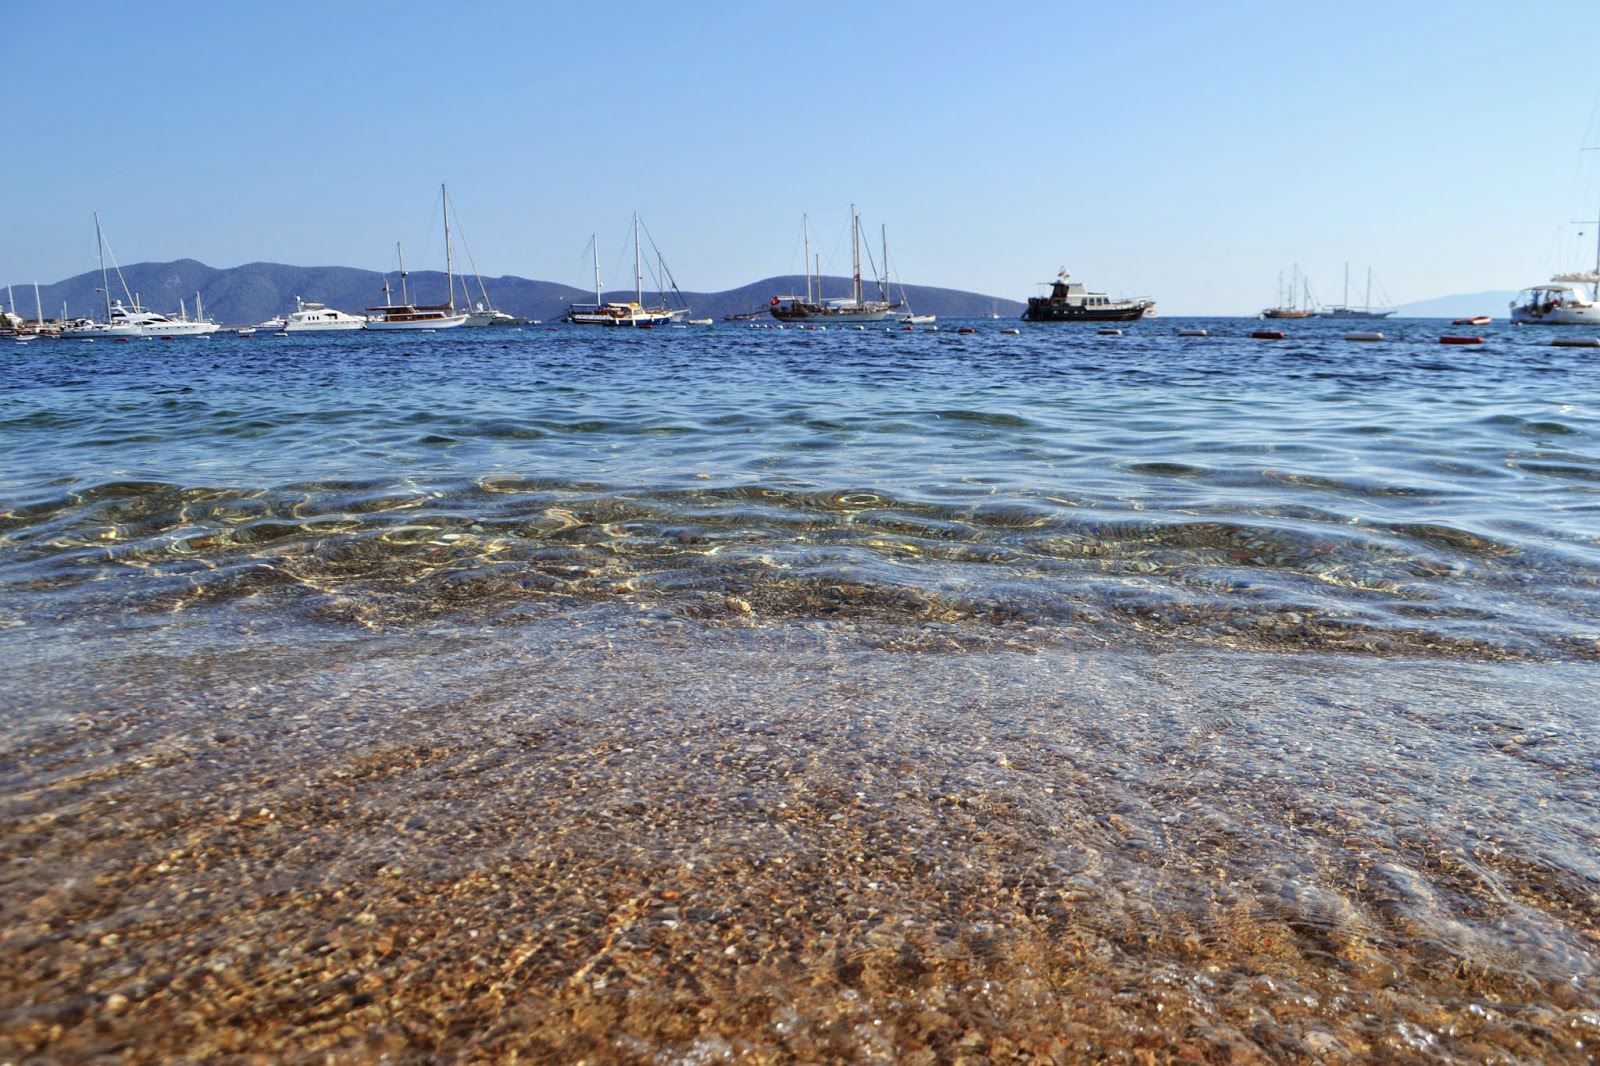 Photo taken from the shore or Bodrum beach. Looking out across the bay at the clear waters and the boats in the distance.